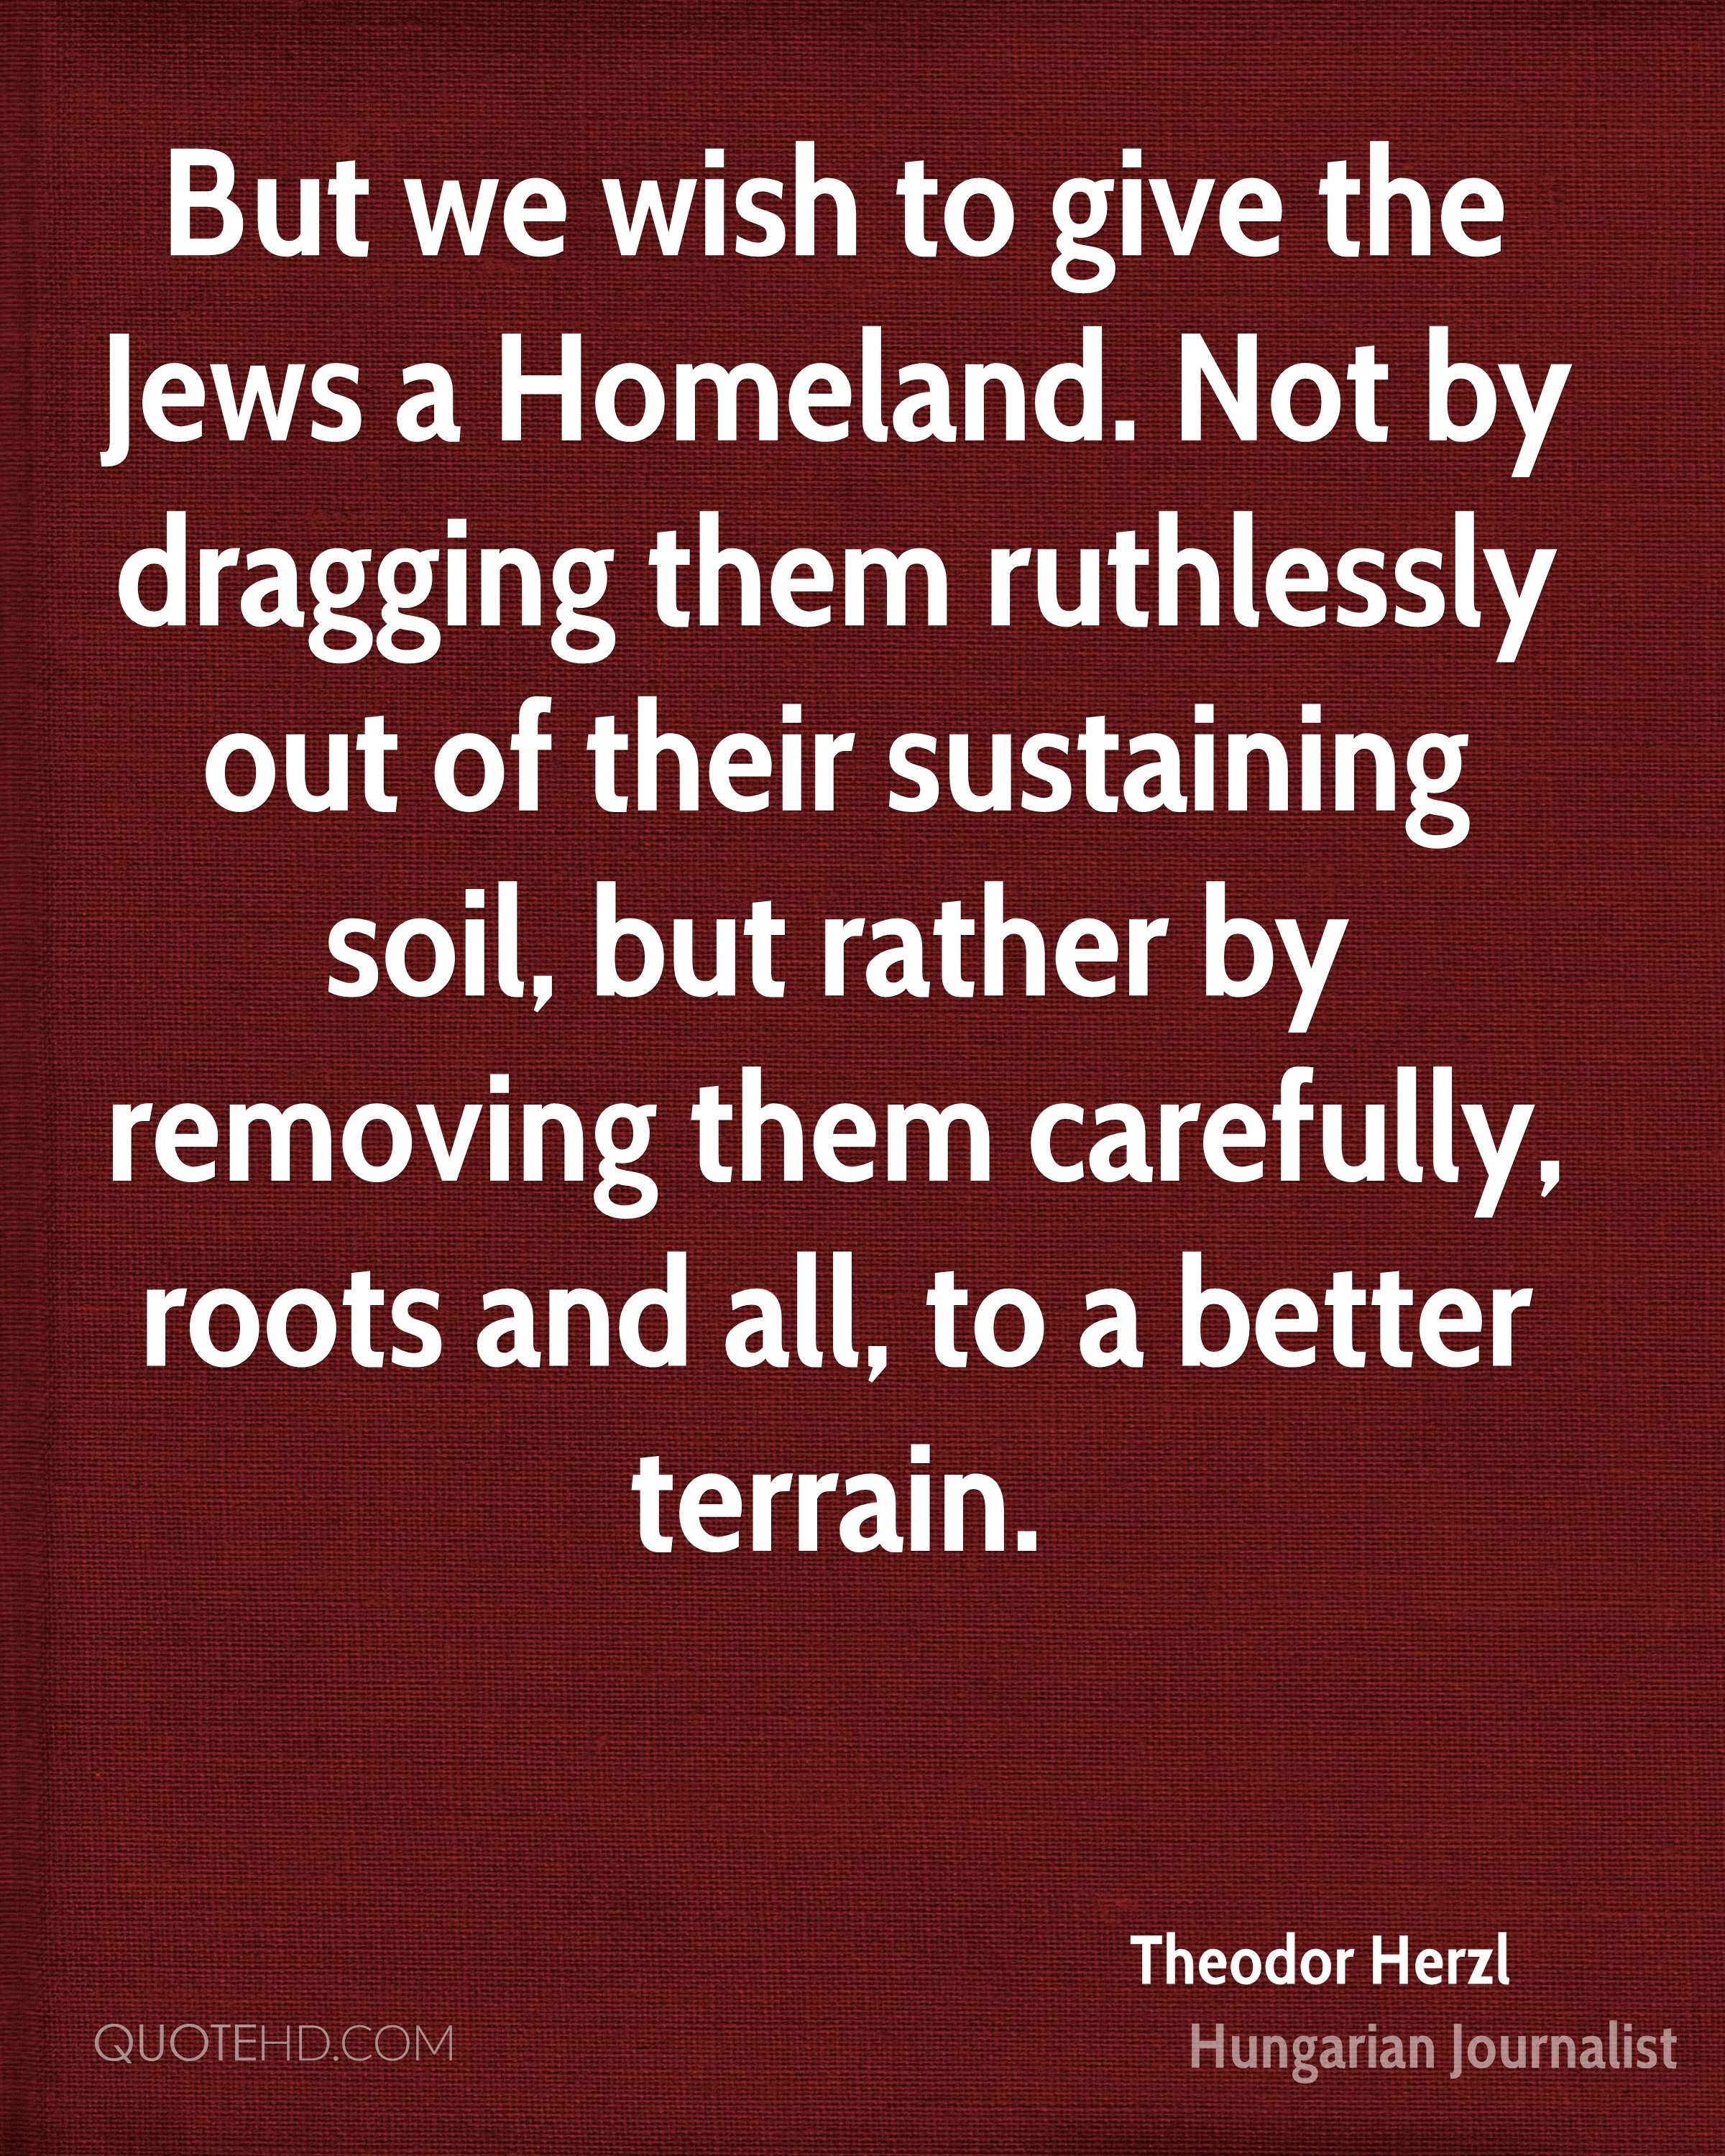 But we wish to give the Jews a Homeland. Not by dragging them ruthlessly out of their sustaining soil, but rather by removing them carefully, roots and all, to a better terrain.